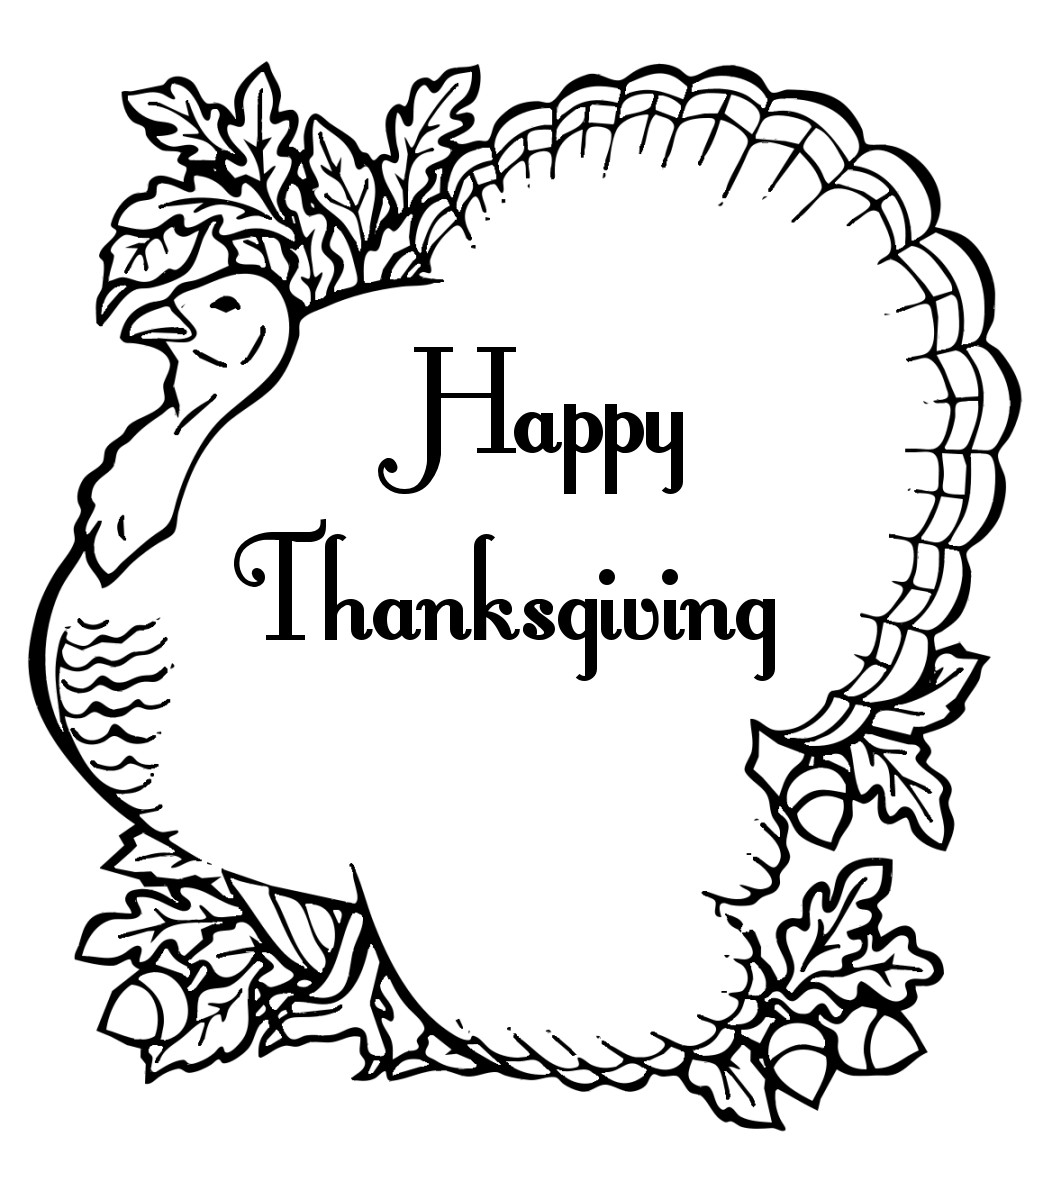 Thanksgiving Turkey Clipart Black And White  Best Turkey Clipart Black And White 1516 Clipartion